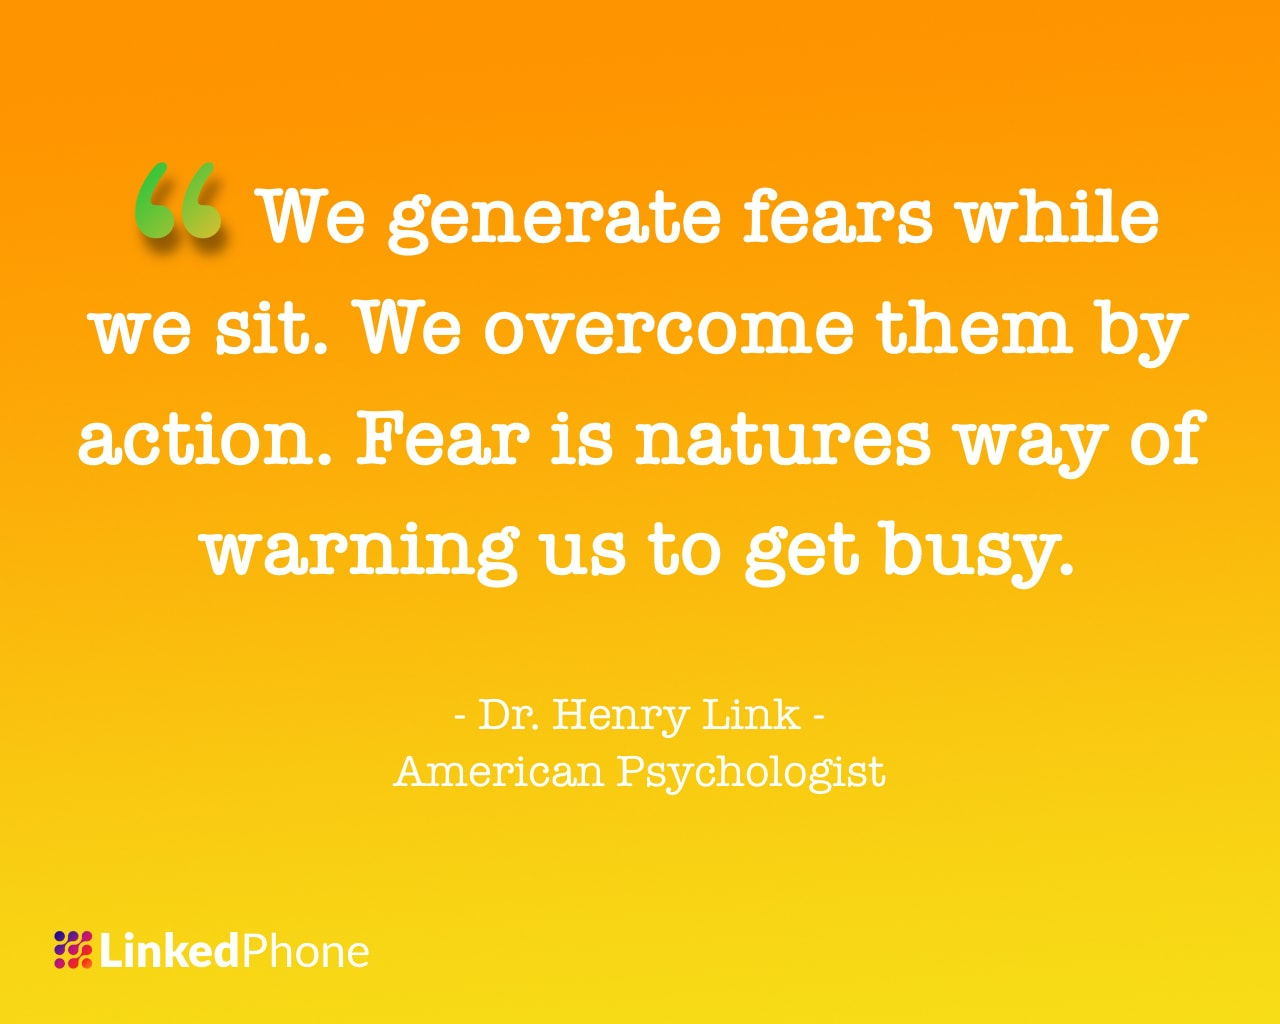 Dr. Henry Link - Motivational Inspirational Quotes and Sayings